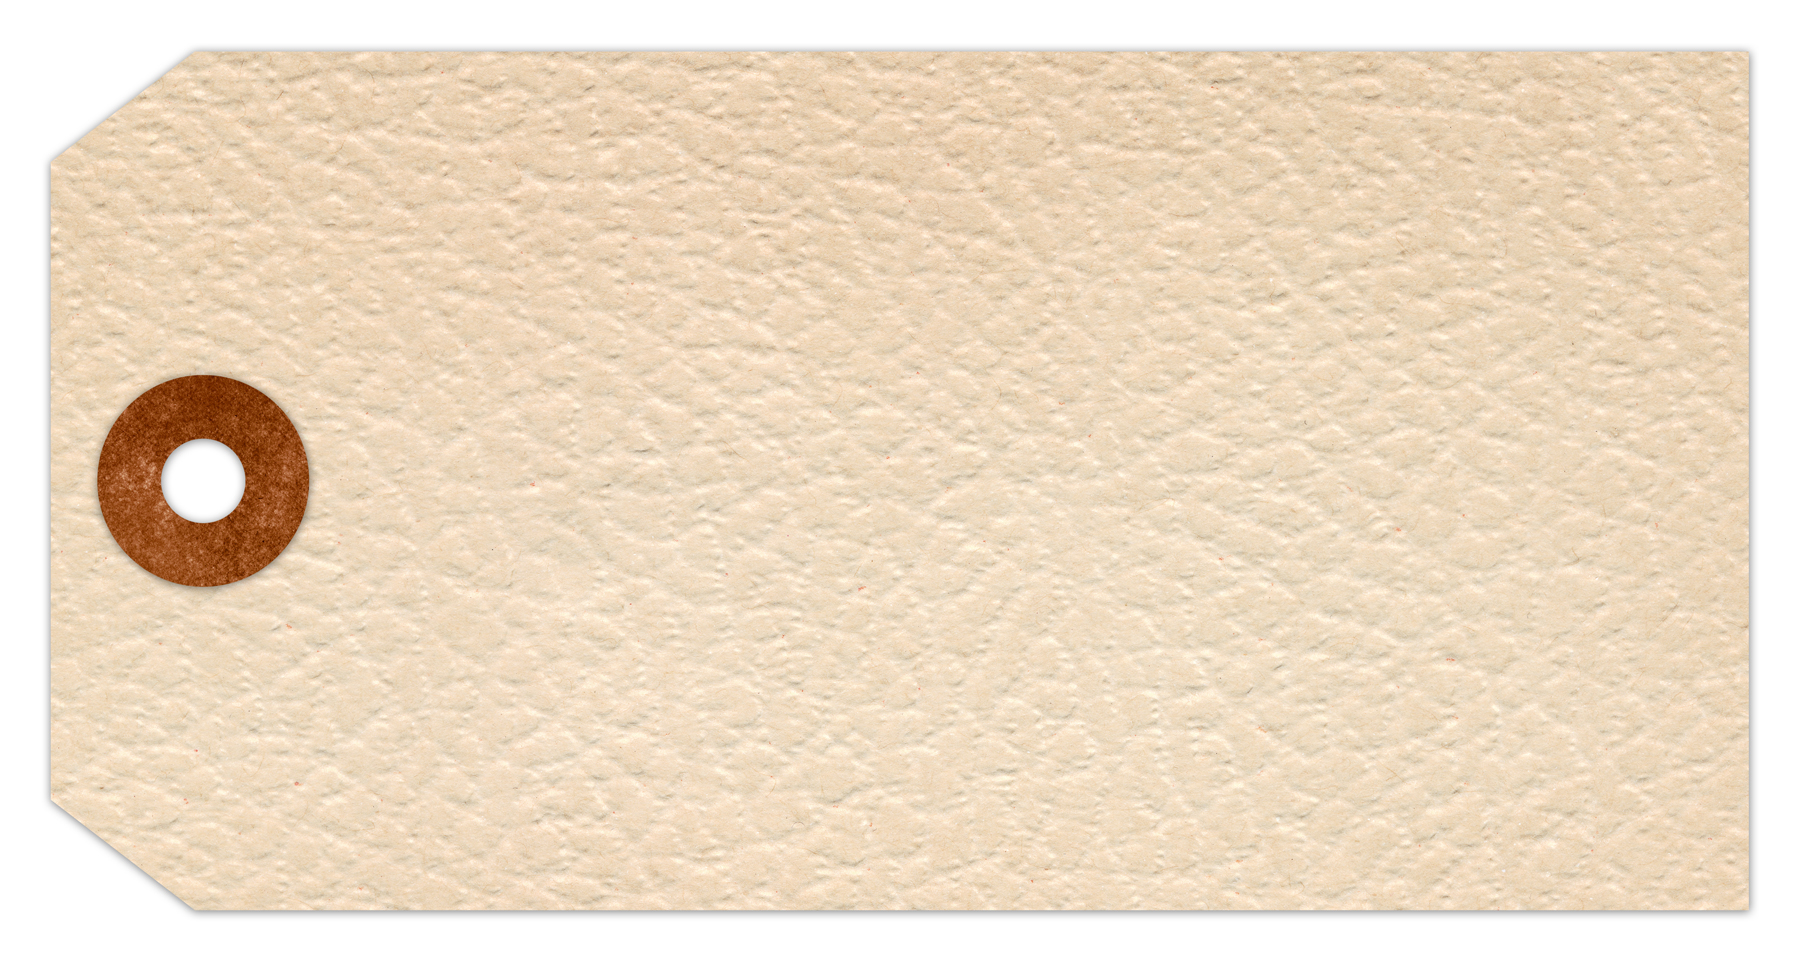 Vintage paper tag - white leather photo